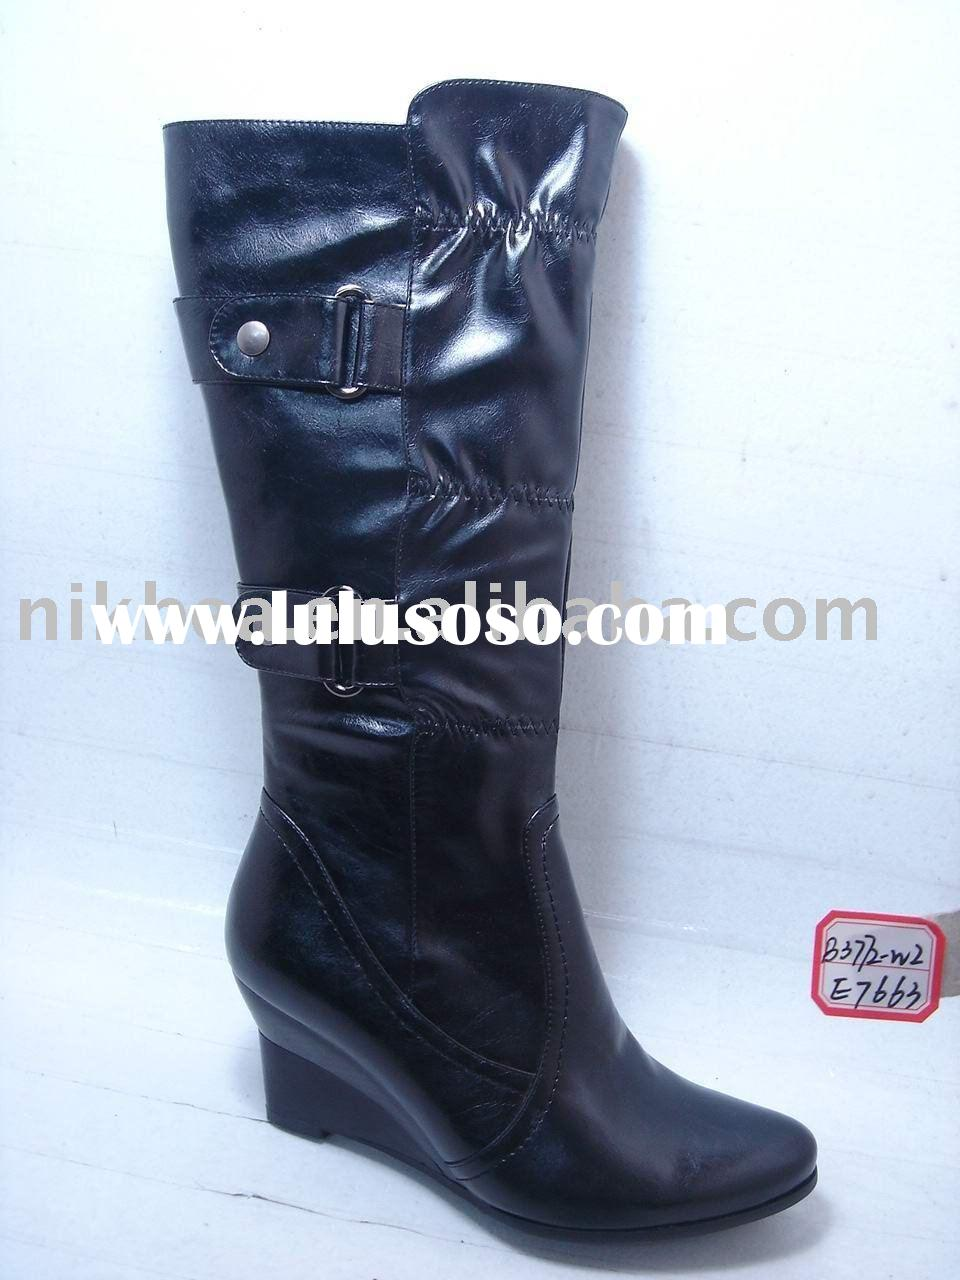 2011 fashion hot latest design confort midium heel ladies shoes and boots for wholesale